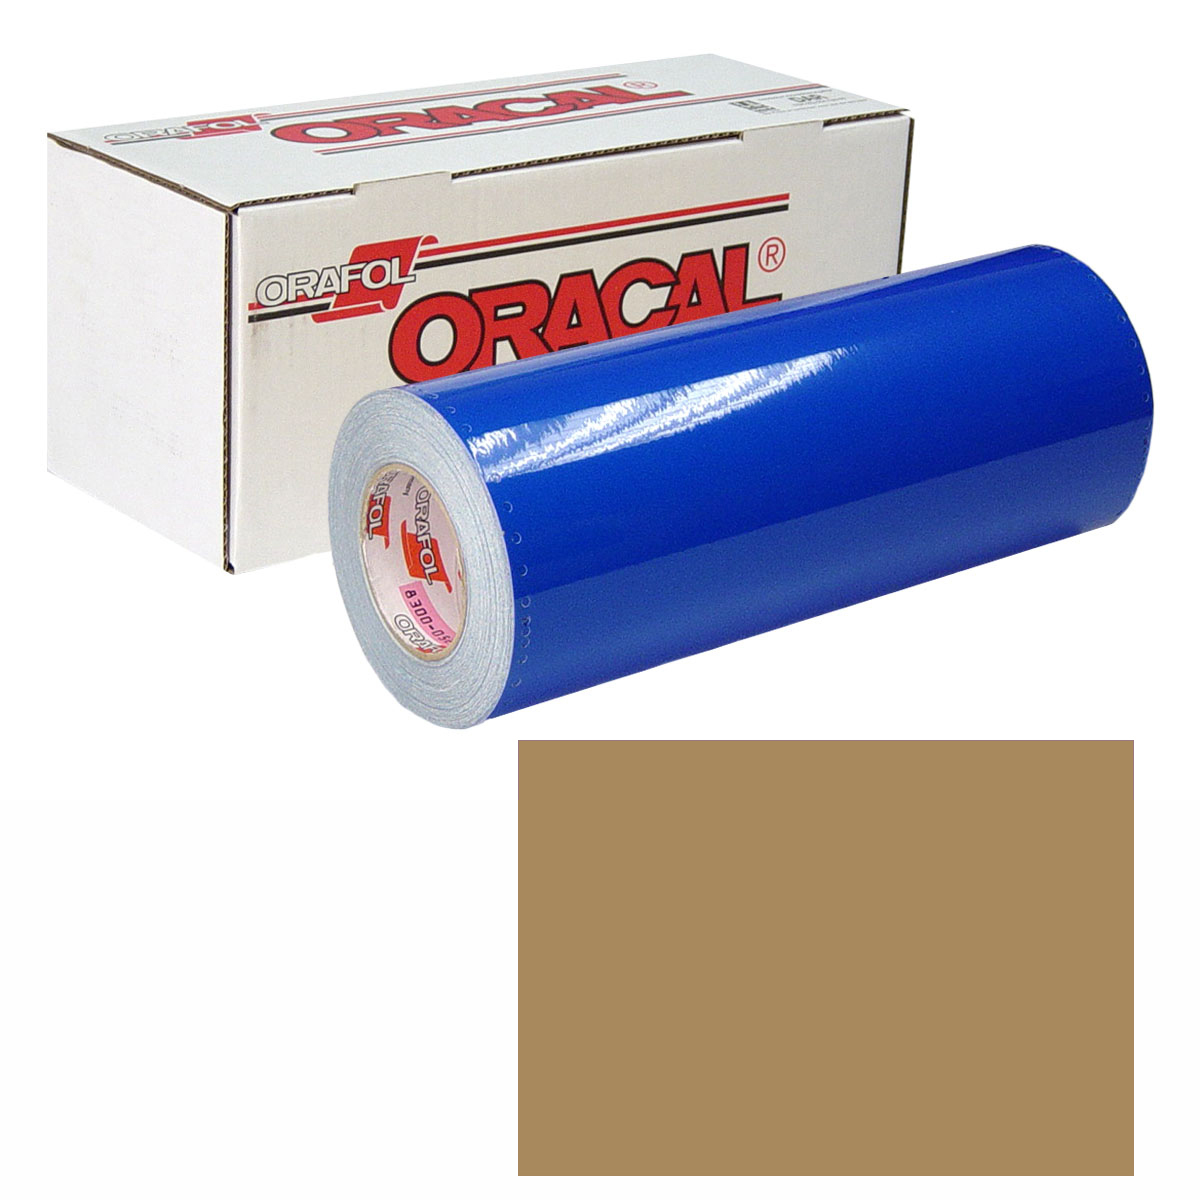 ORACAL 631 Unp 30In X 10Yd 081 Light Brown